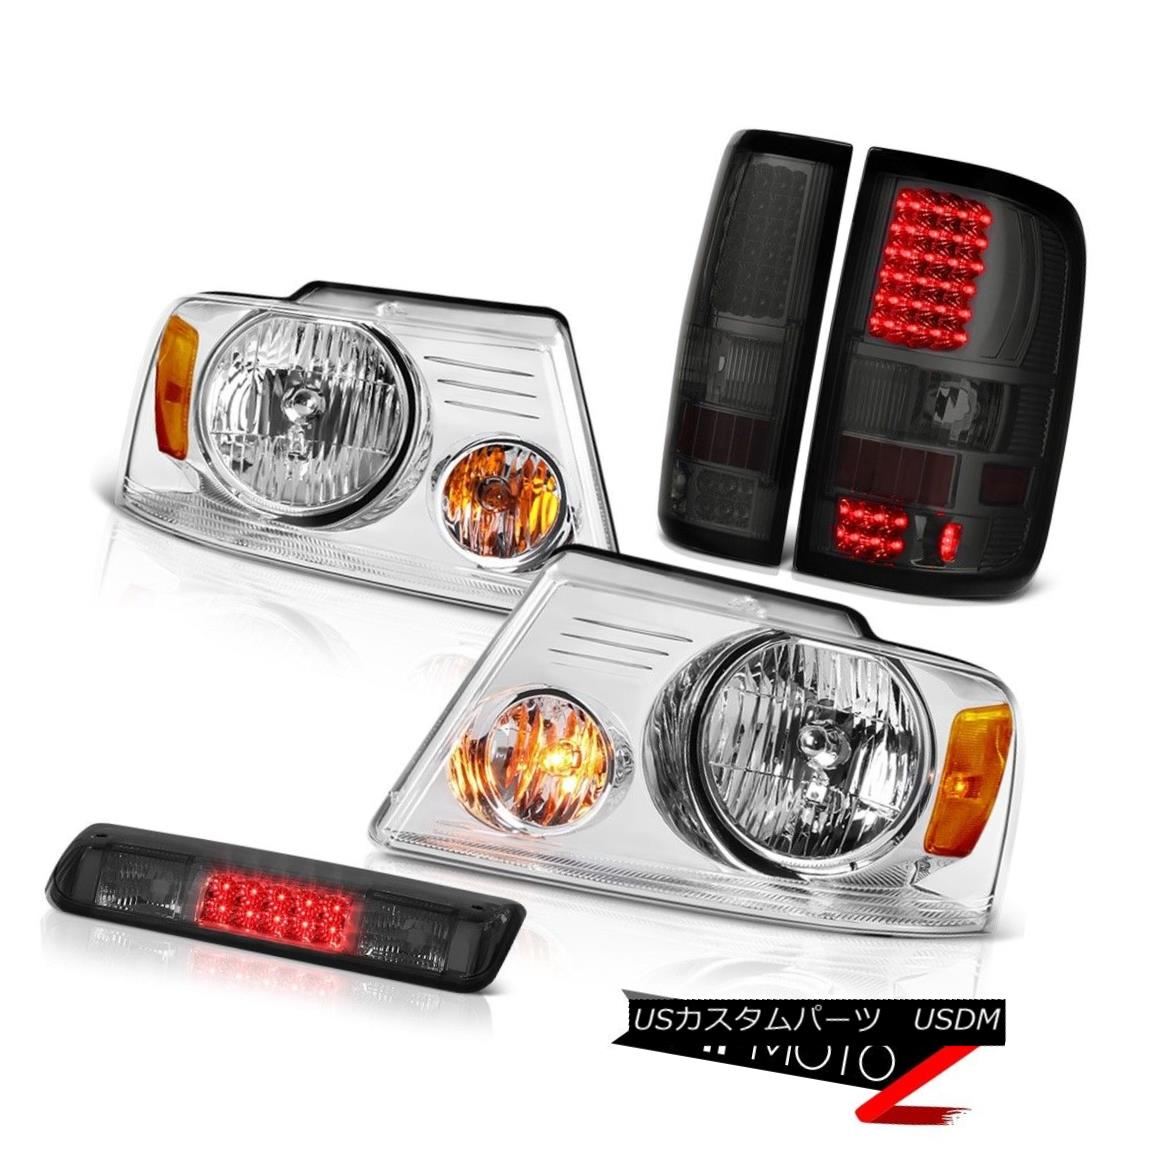 テールライト 2004-2008 Ford F150 XLT Third Brake Lamp Headlights Tail Lights LED